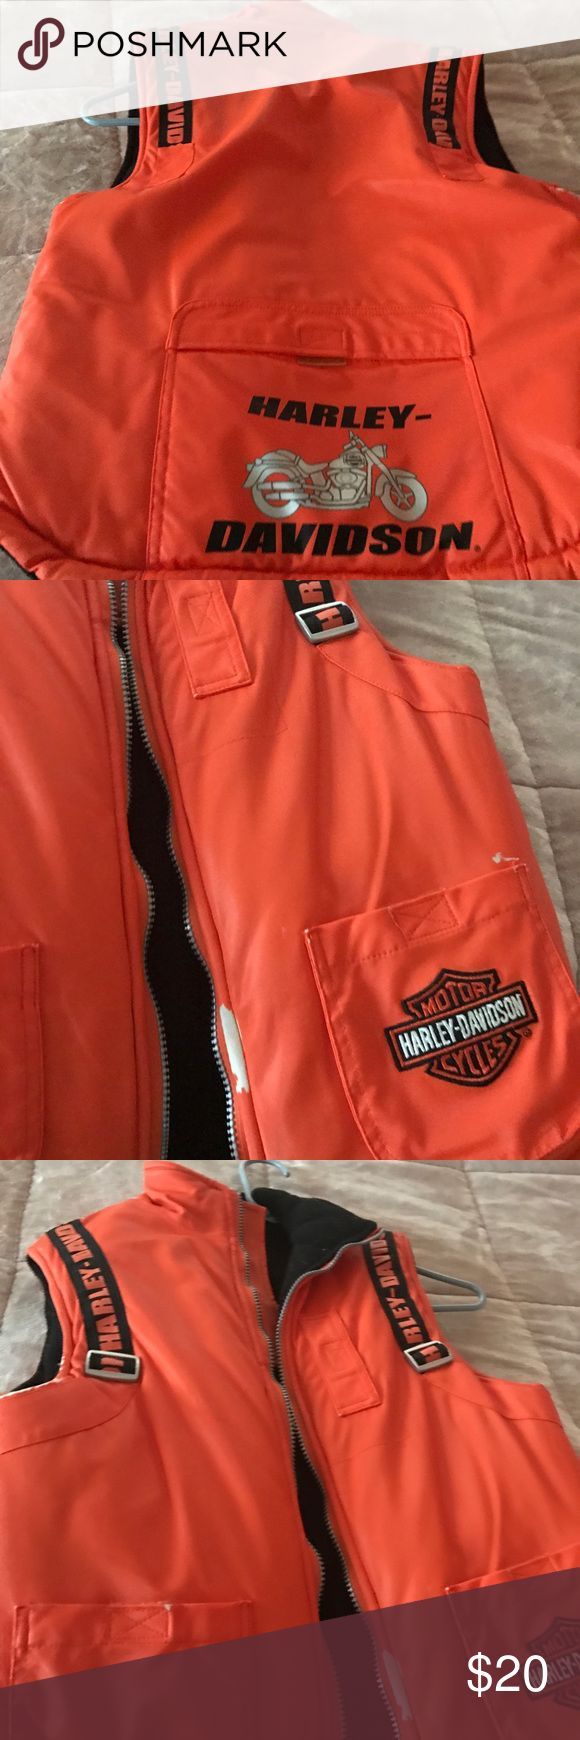 Harley Davidson vest Harley Davidson  used you can see wear something orange has rubbed off and it's white other than that zipper everything works fine still a lot were Harley Davidson Other